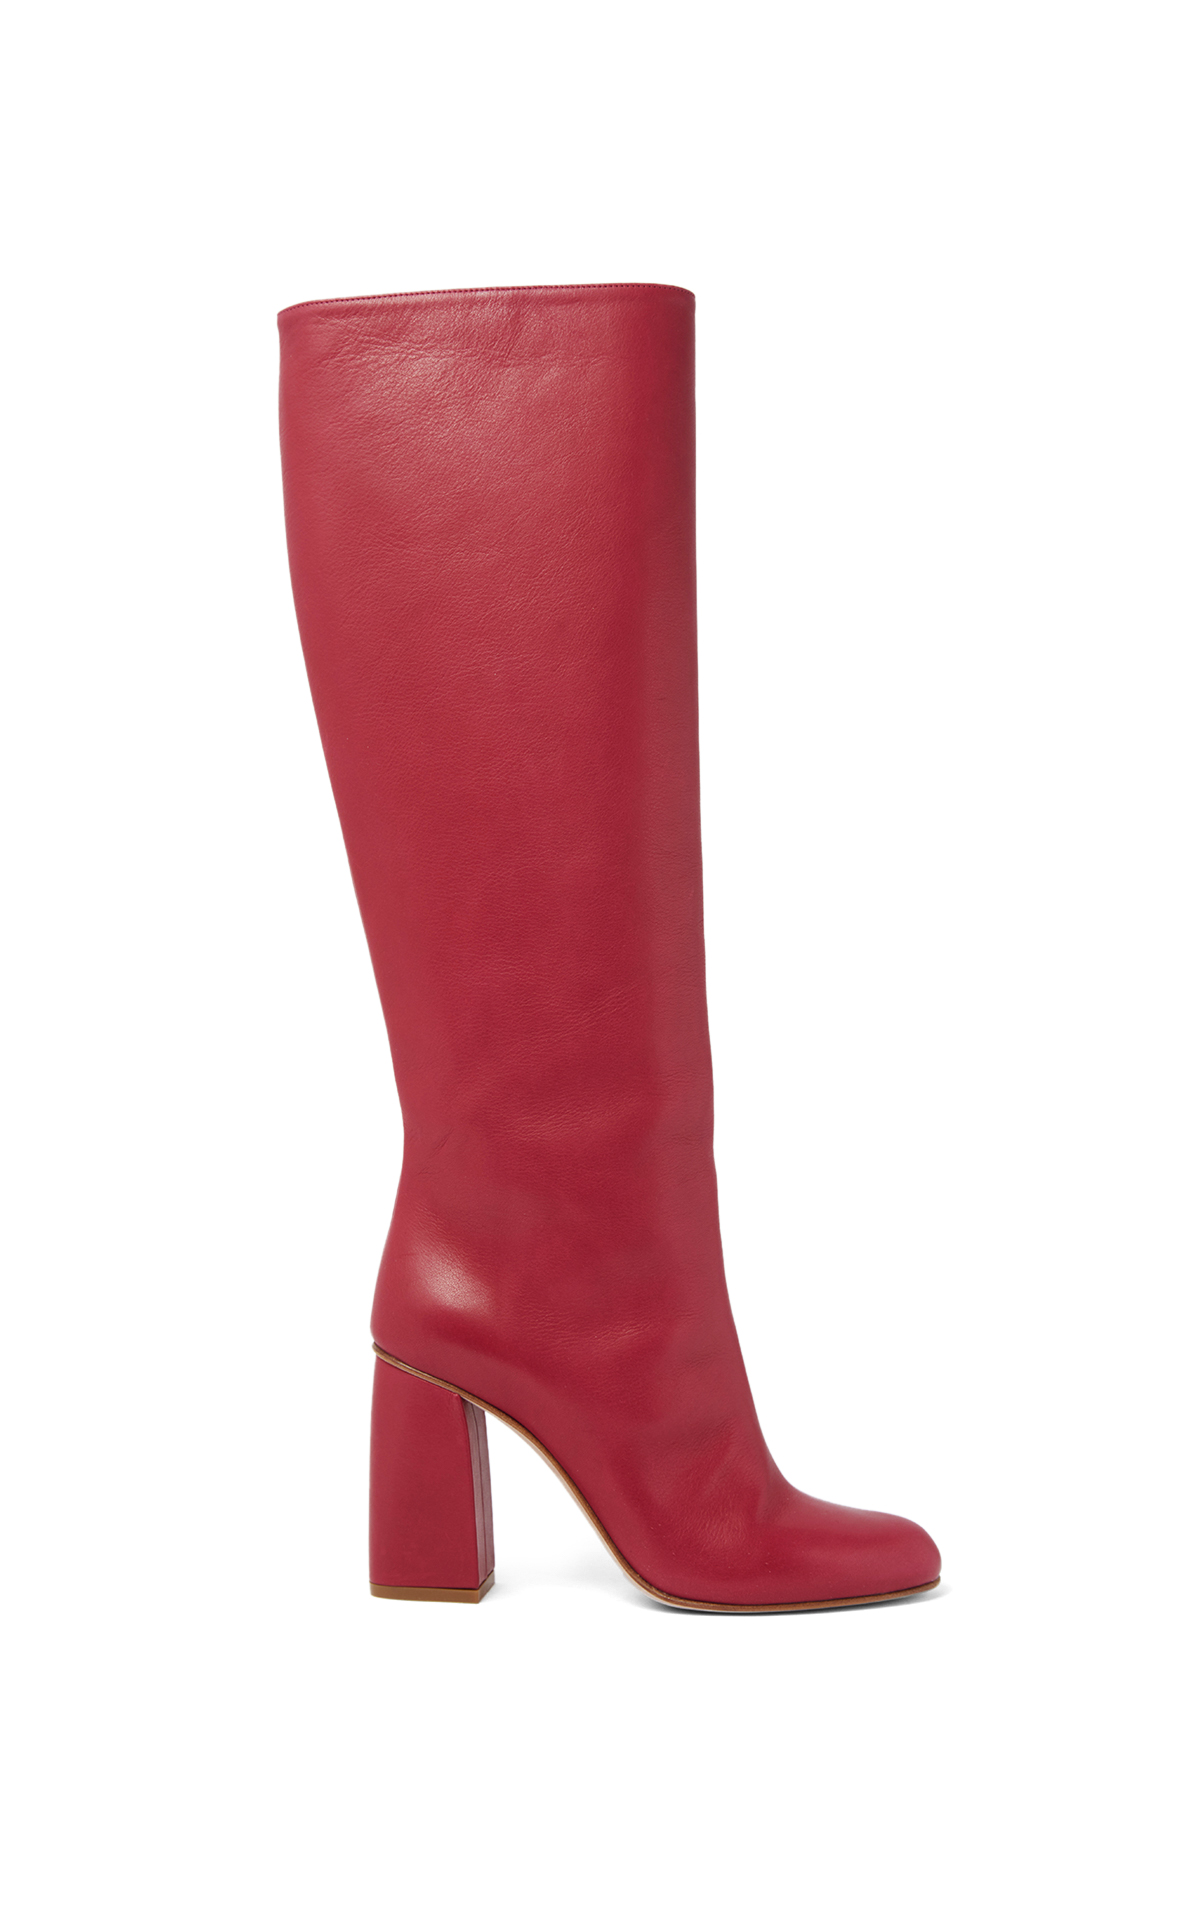 REDValentino Pink heeled boots